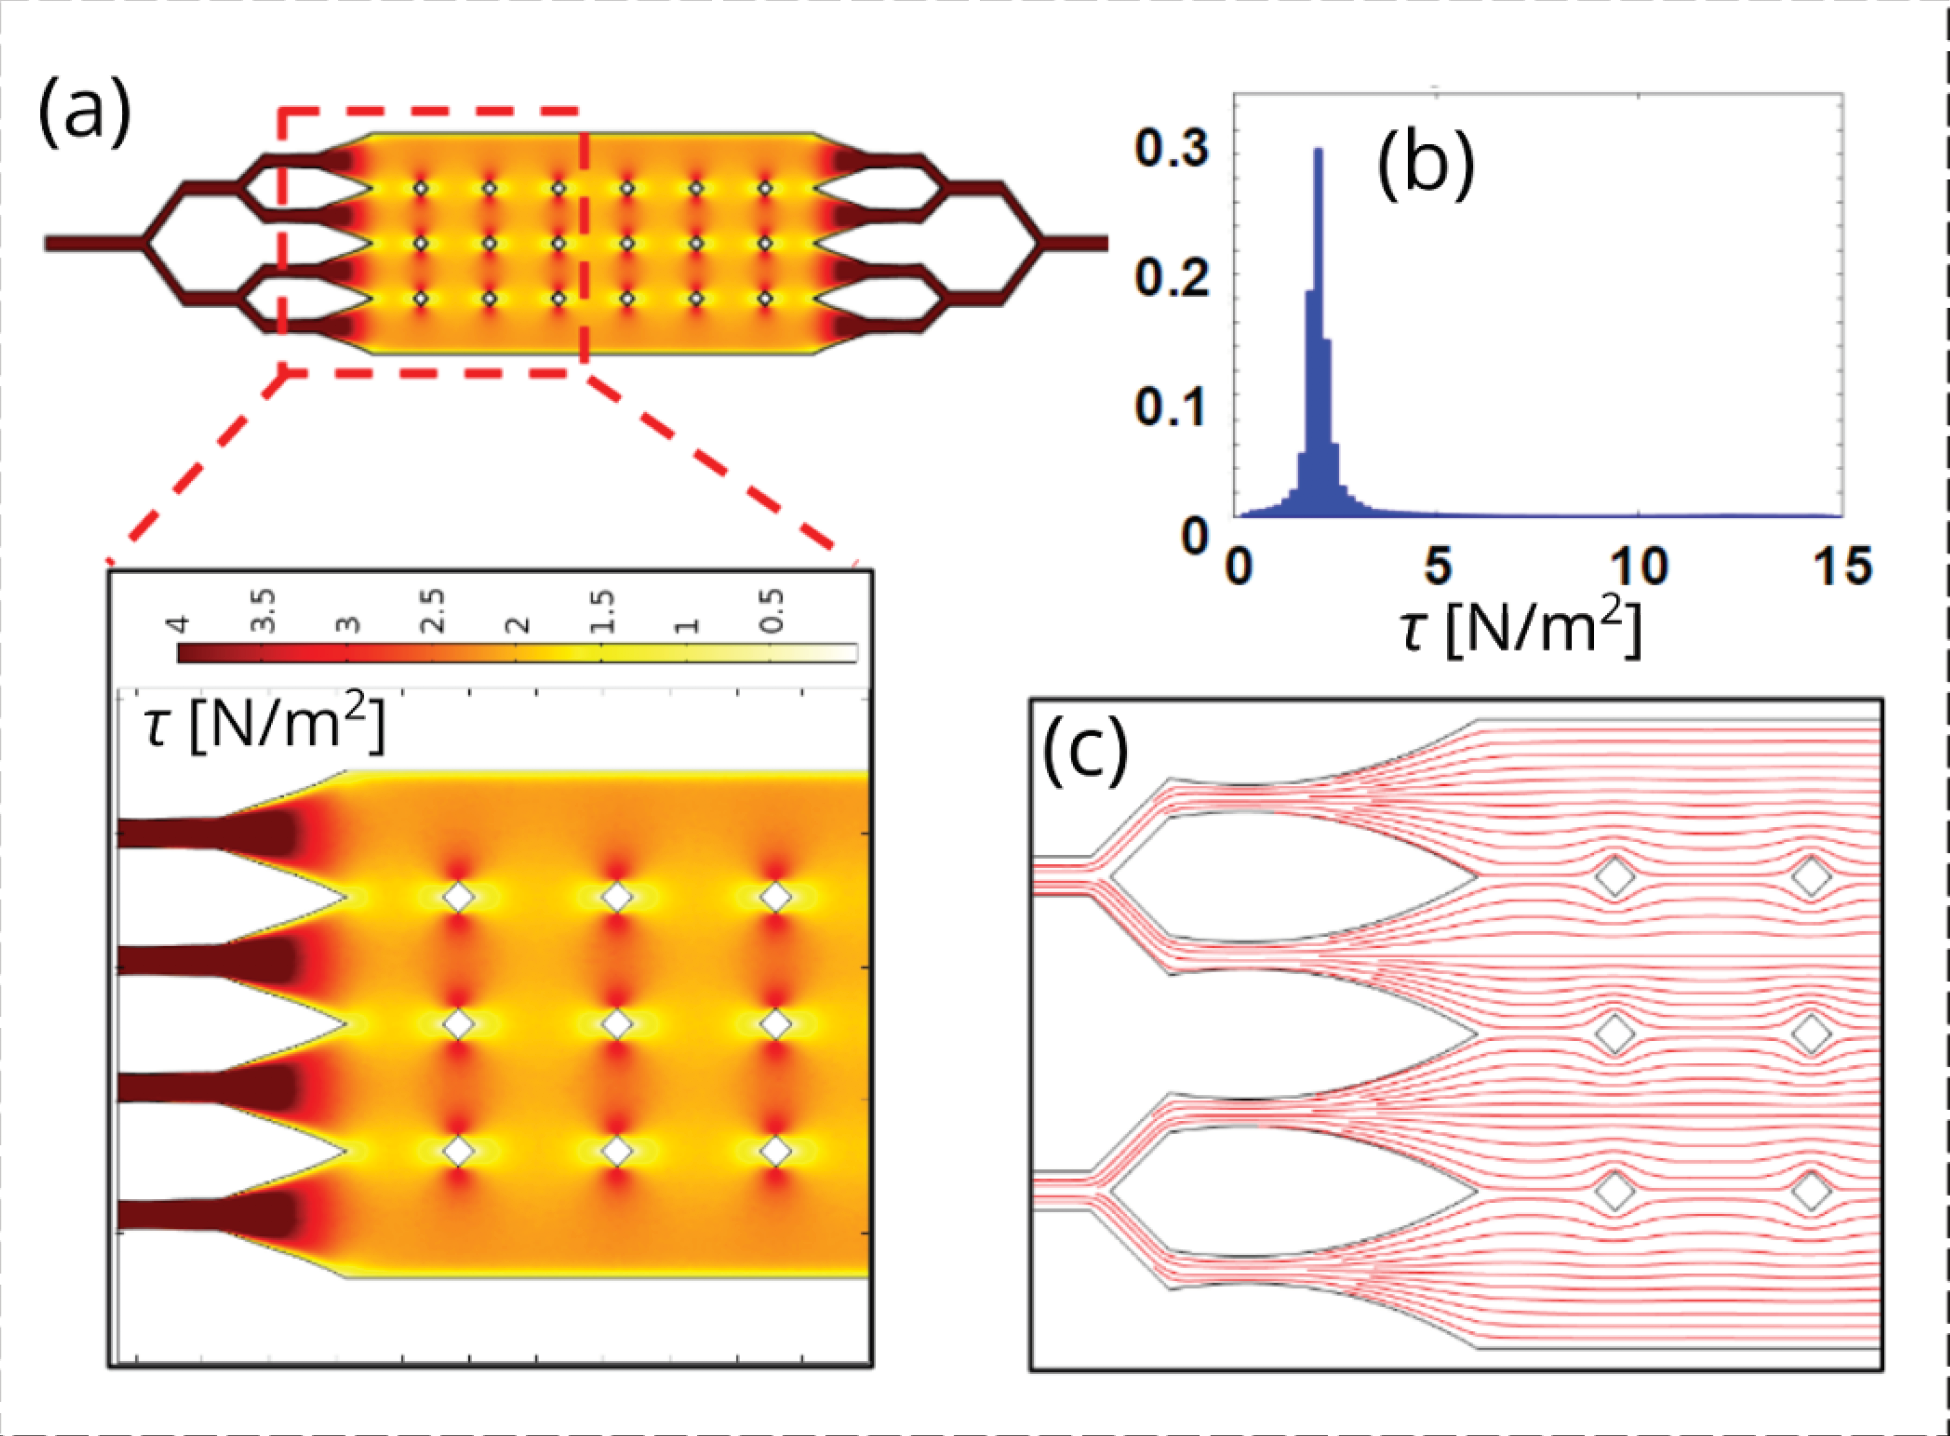 Figure 1 . Shear stress modeling results from COMSOL and particle image velocimetry.